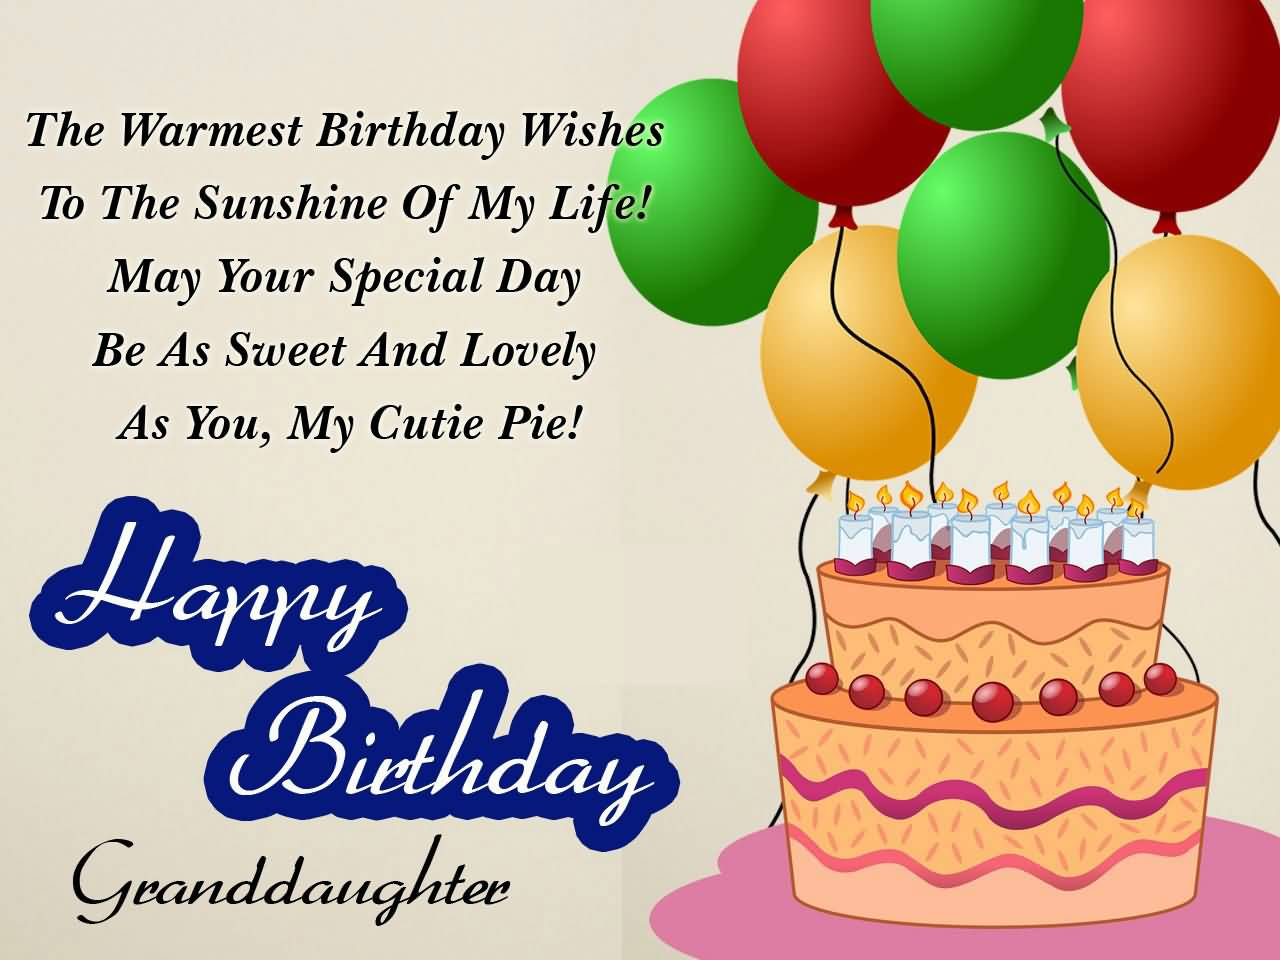 The Warmest Birthday Wishes Sweet Sayings About Granddaughters